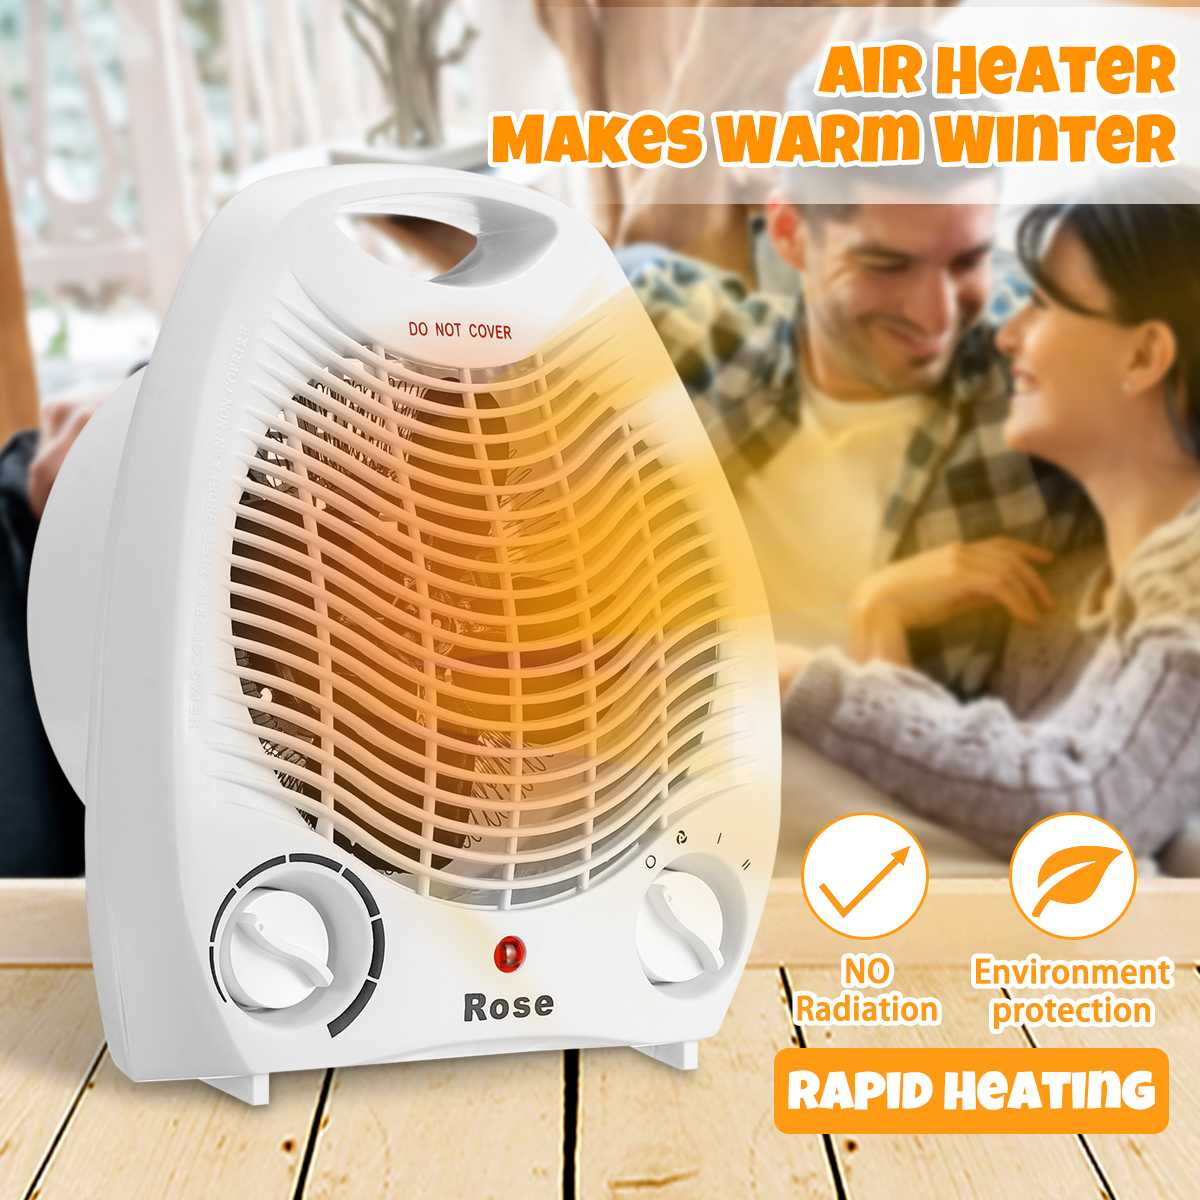 2000W Electric Fan Room Heater 220V Portable Electric Space Heater Mini 3 Heating Settings Air Heating Space Winter Warmer Fan2000W Electric Fan Room Heater 220V Portable Electric Space Heater Mini 3 Heating Settings Air Heating Space Winter Warmer Fan